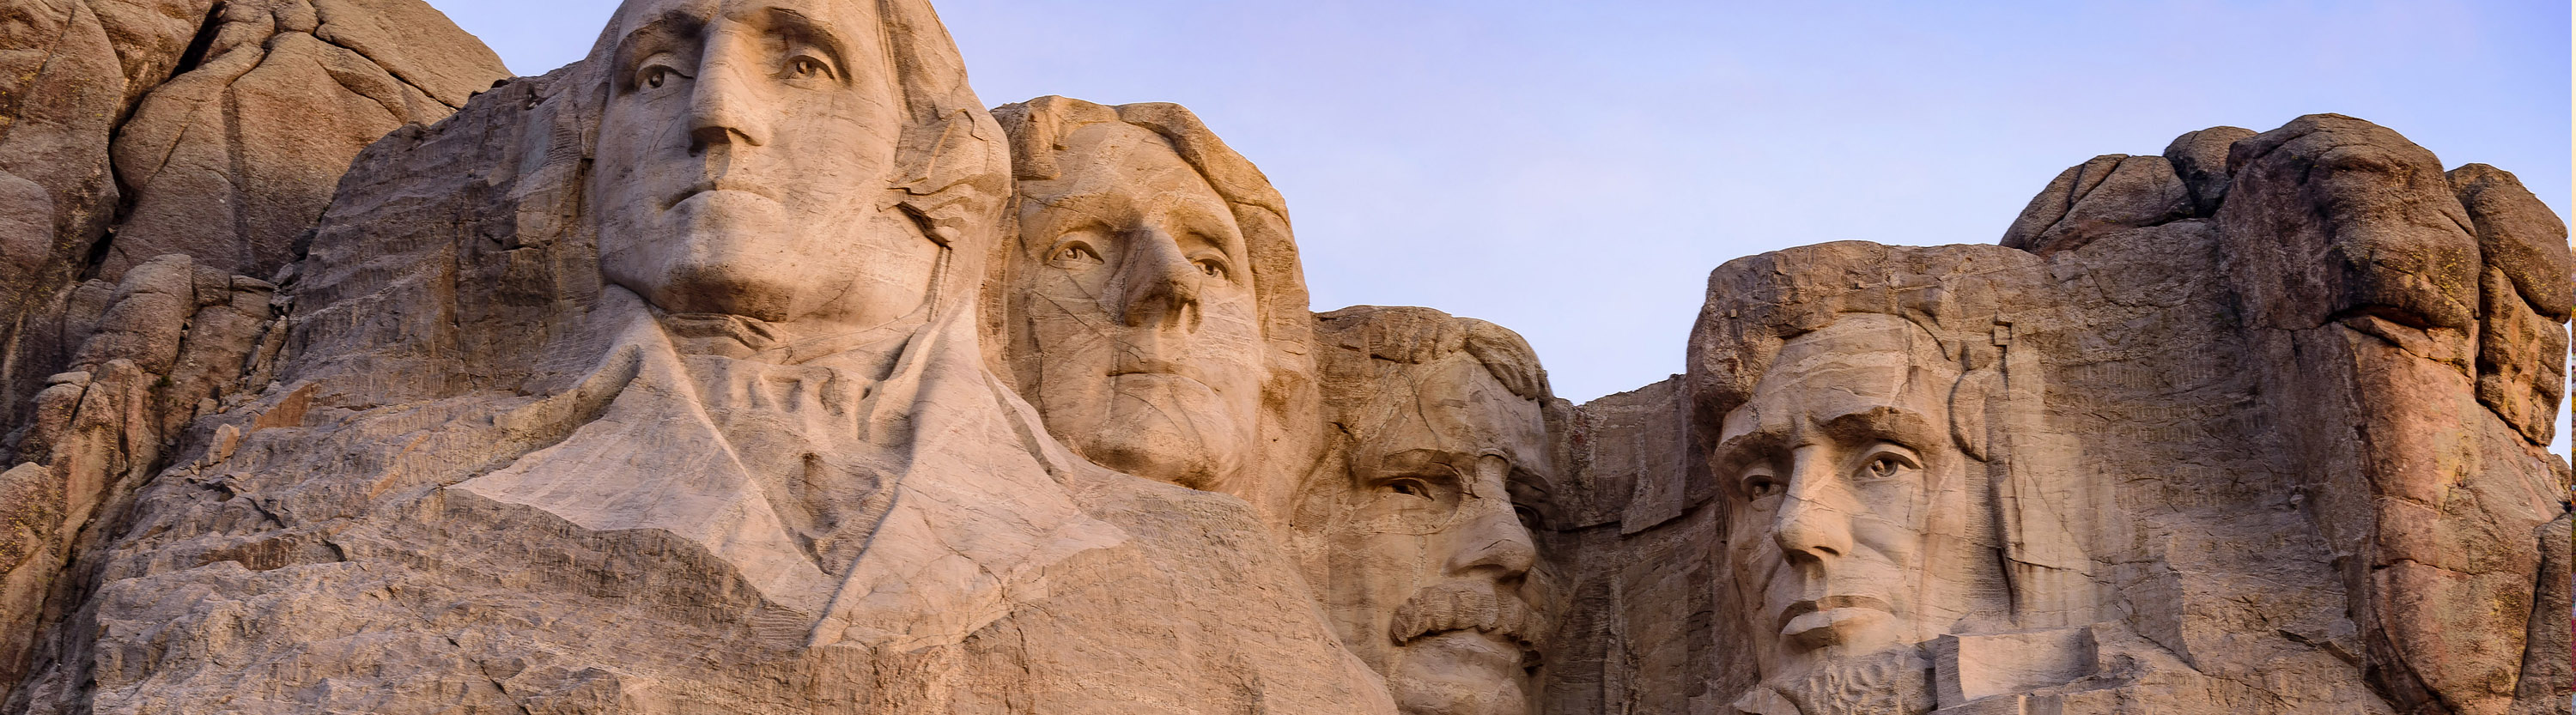 Four presidents' faces carved into a mountain